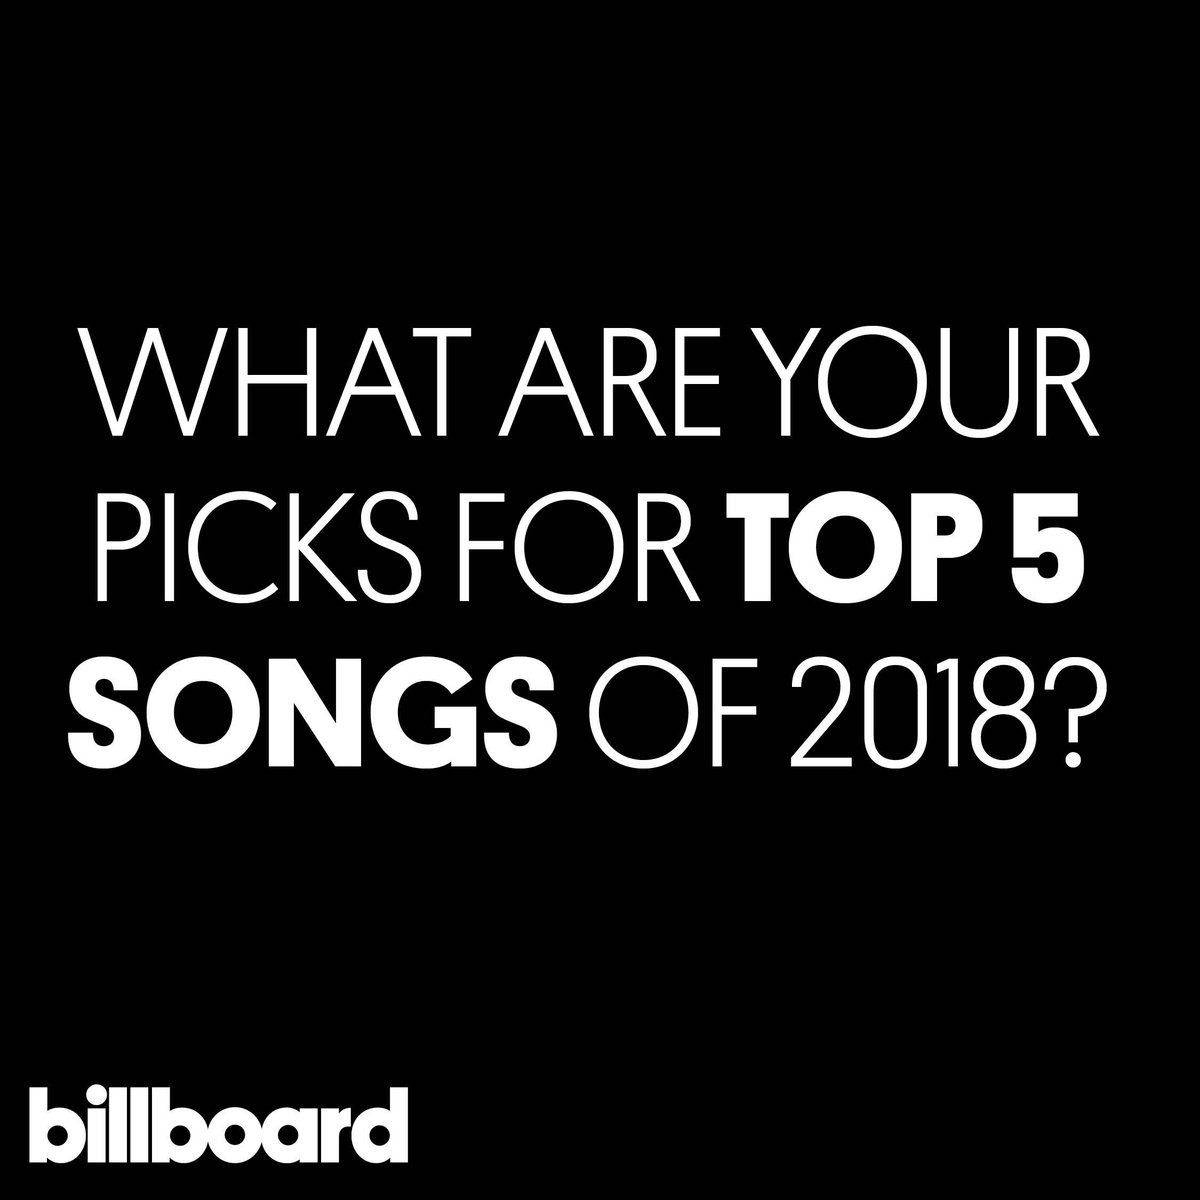 Which 5 songs were your favorites this year? 🎶  #yearinmusic https://t.co/RlbSfcWl6C